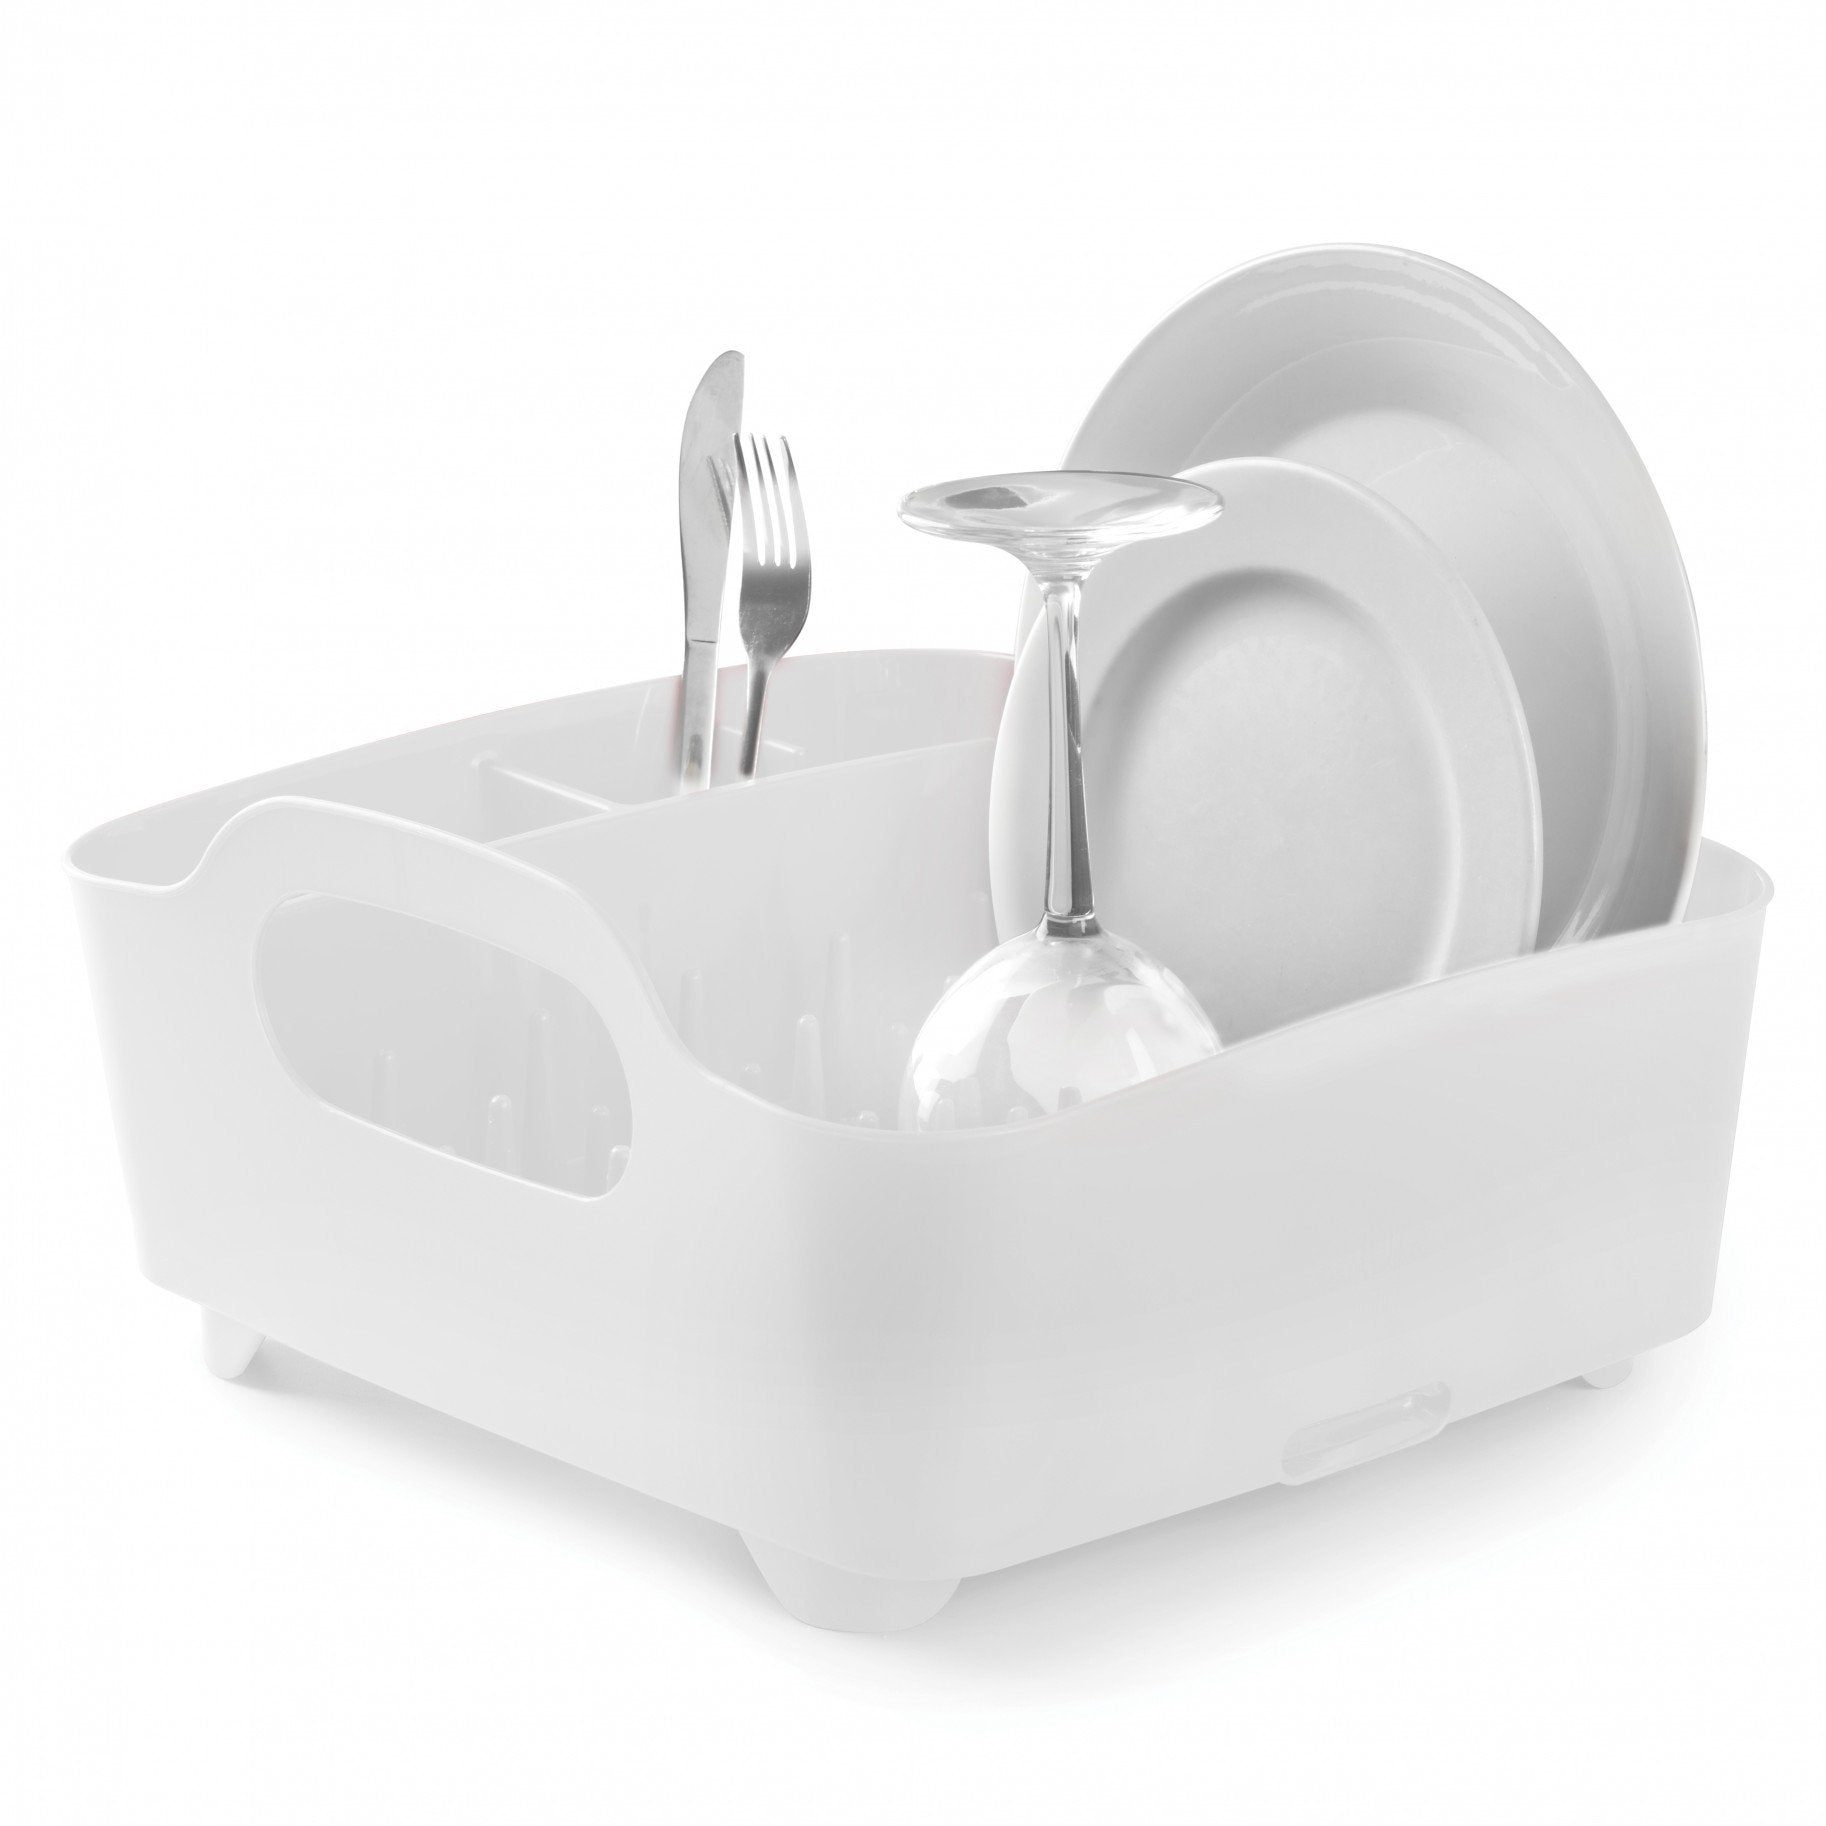 Umbra, Tub Dish Rack, assorted colors, White- Placewares